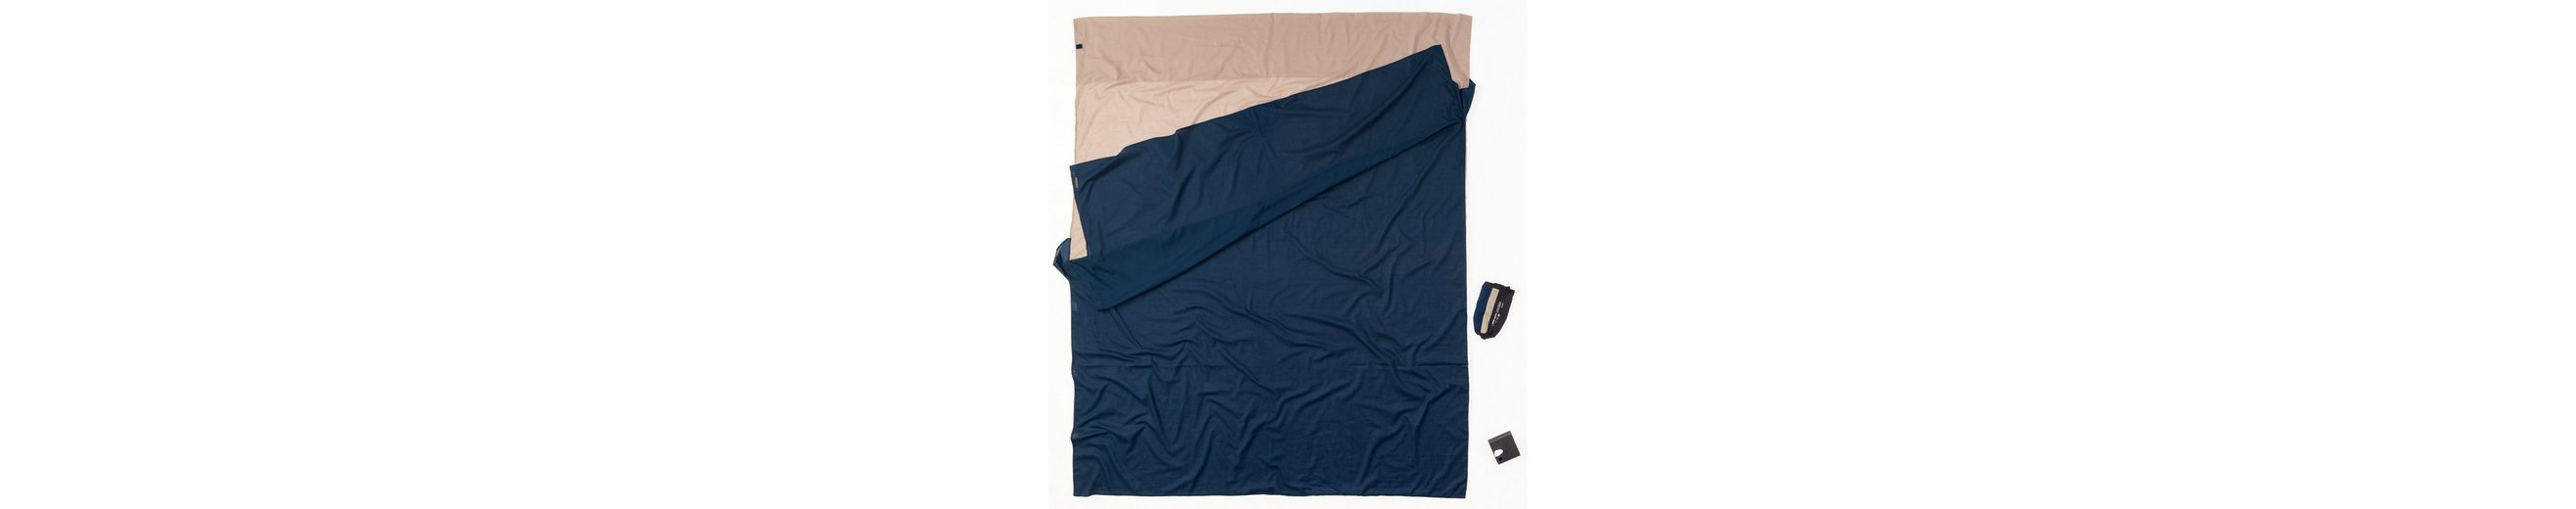 Cocoon Schlafsack »TravelSheet Inlet Doublesize Egyptian Cotton«